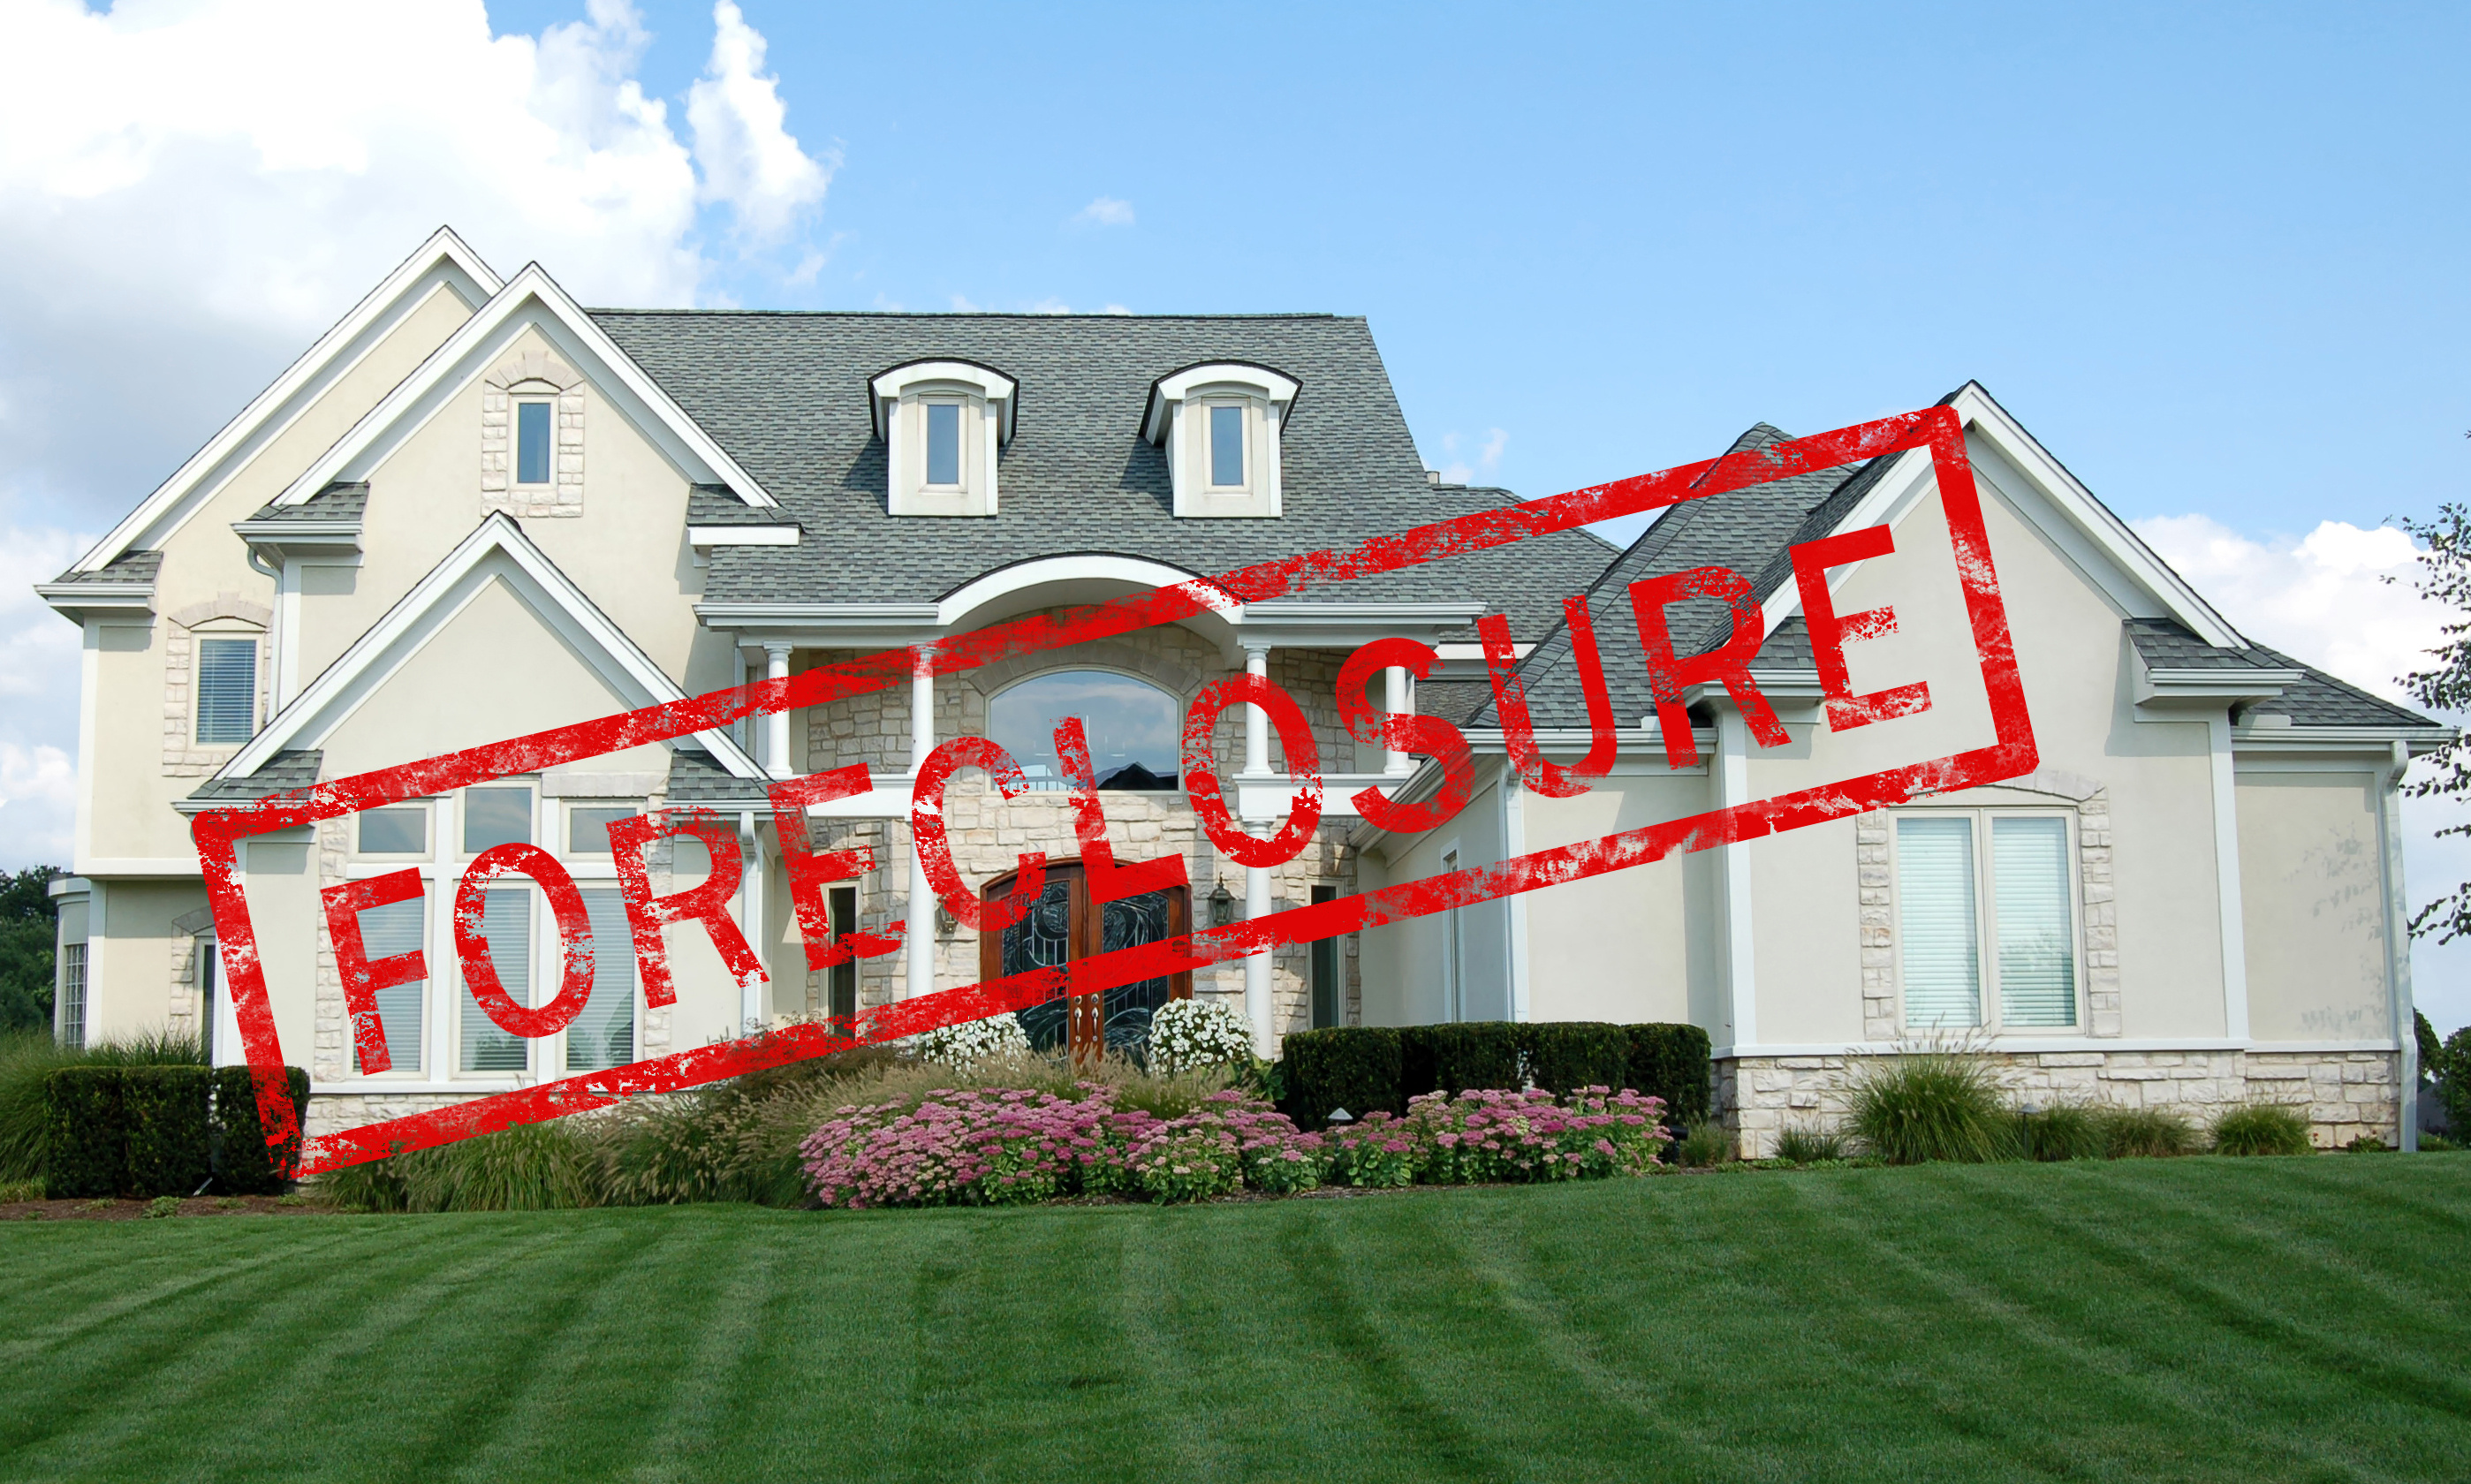 Call MARC ANTHONY GIZZI APPRAISAL & CONSULTING to discuss appraisals on Lee foreclosures